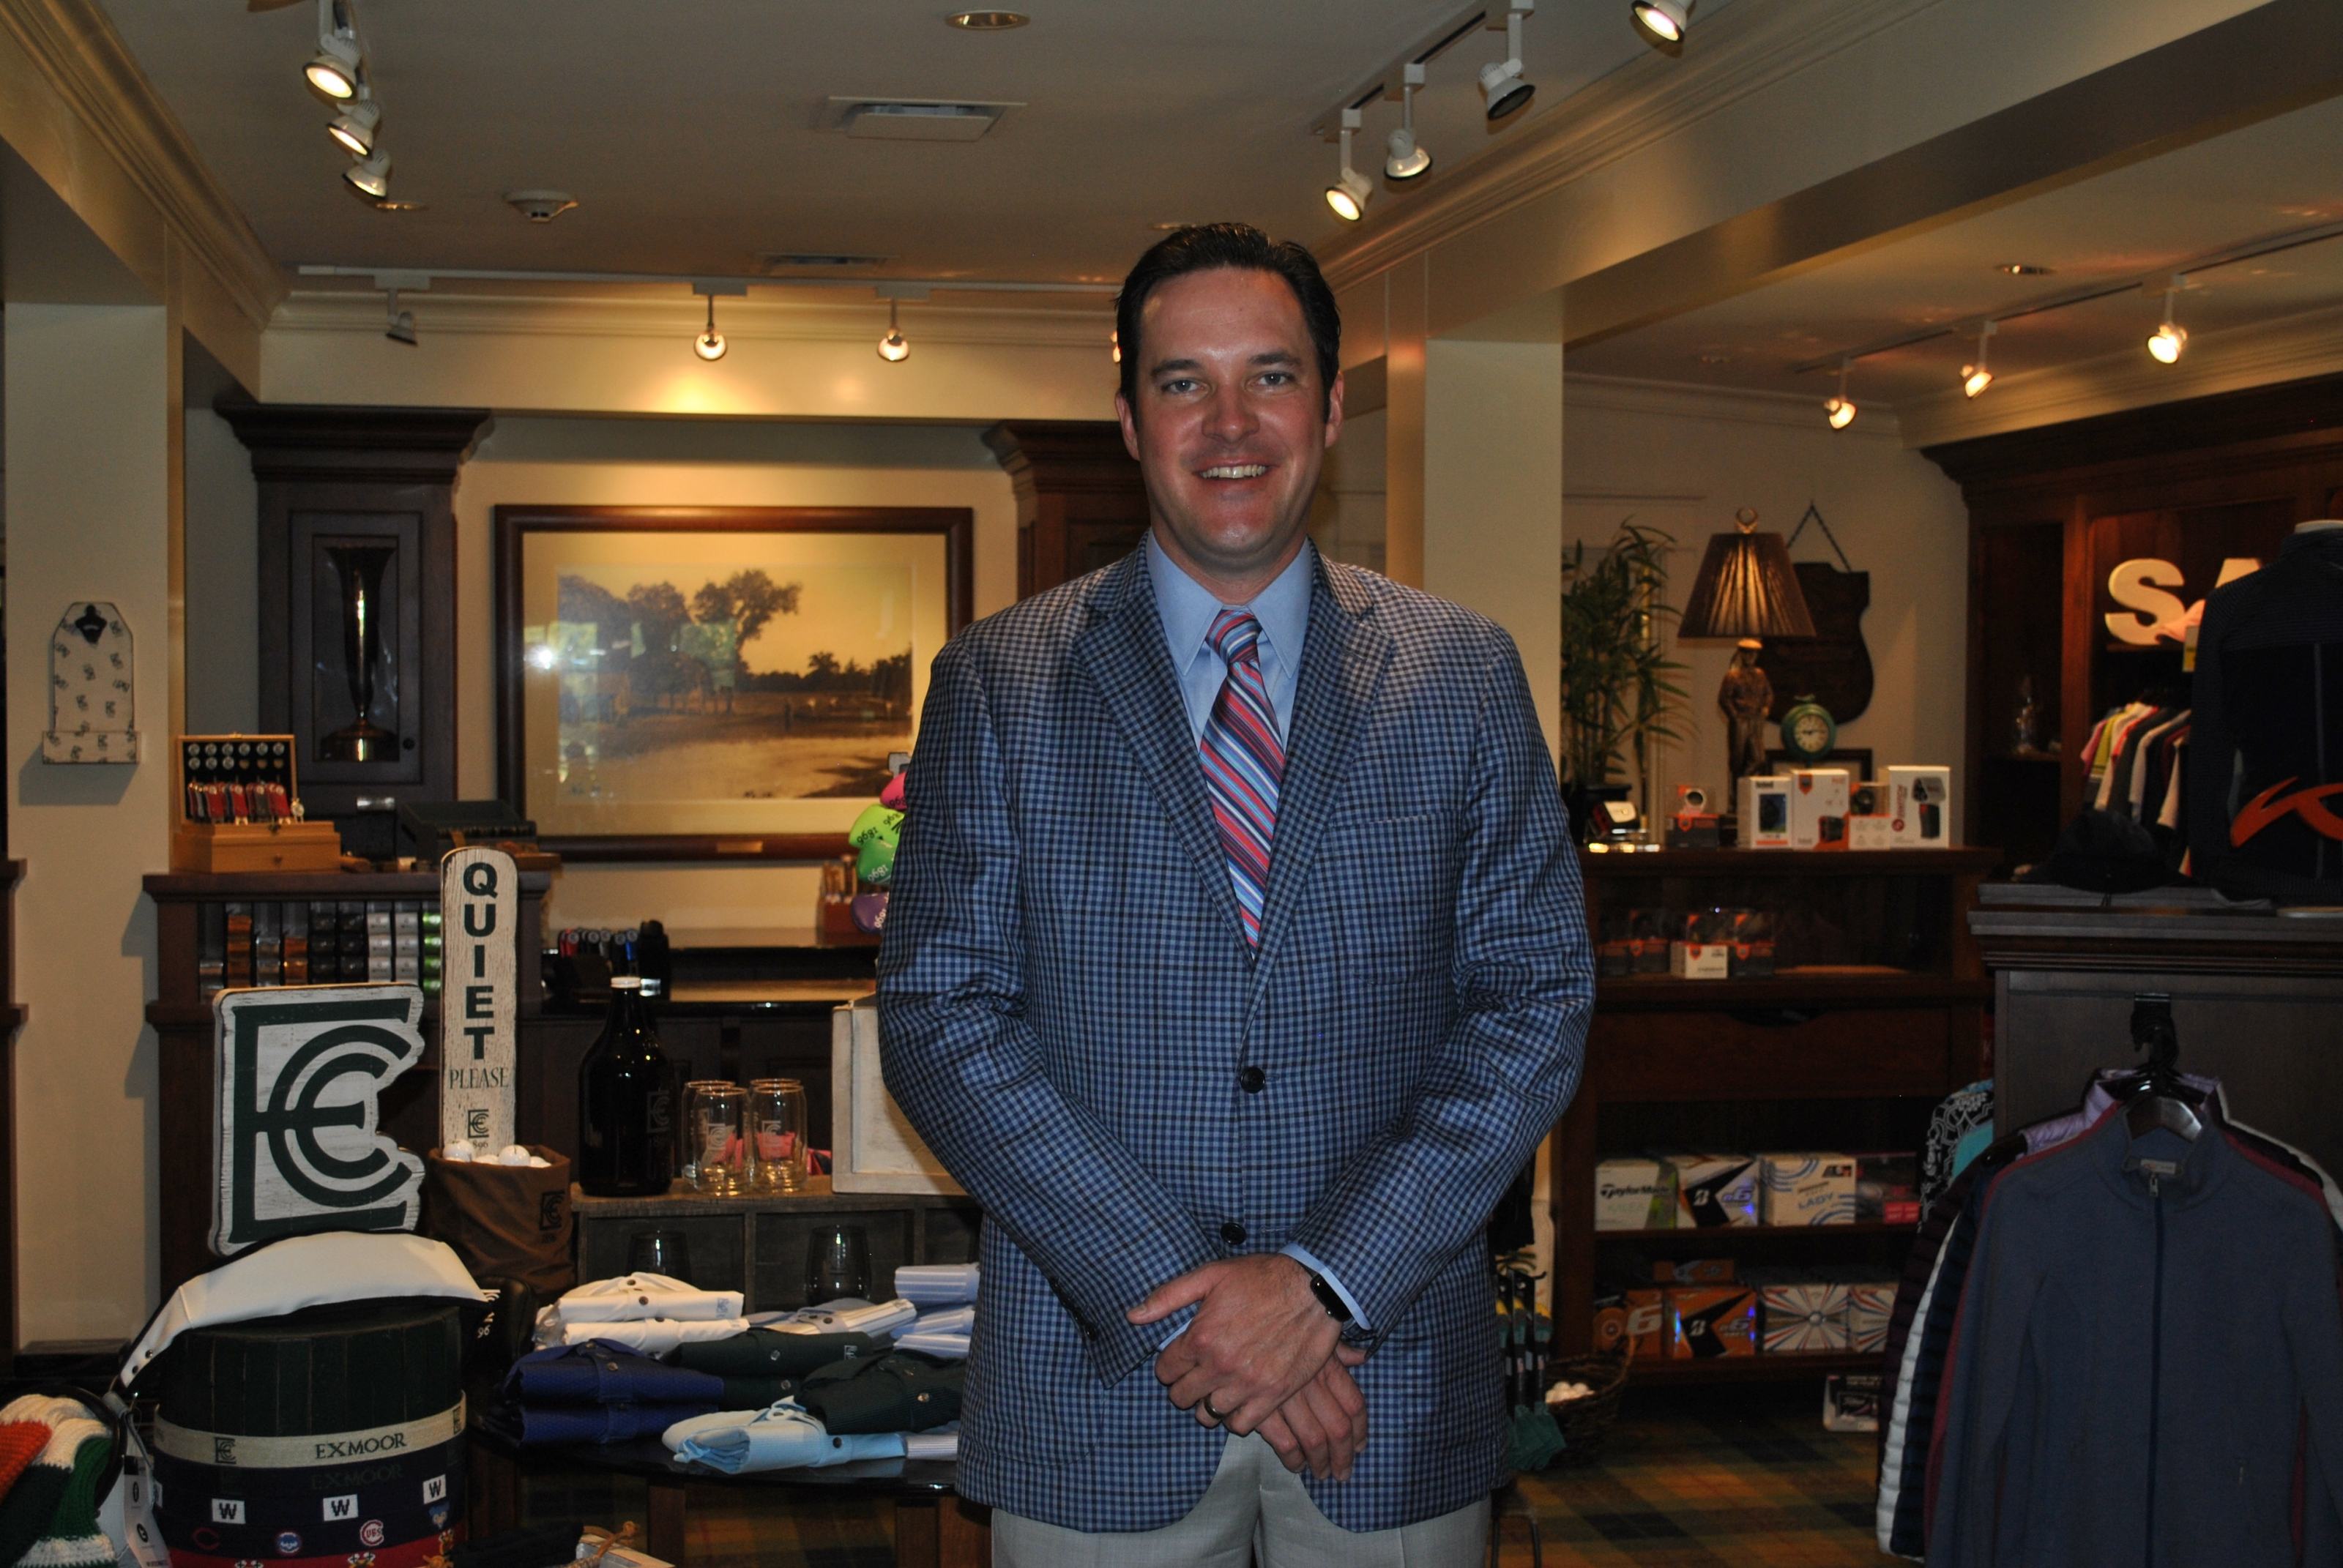 Dave Schmaltz, Head PGA Professional at Exmoor Country Club and 2017 Merchandiser of the Year - Private.